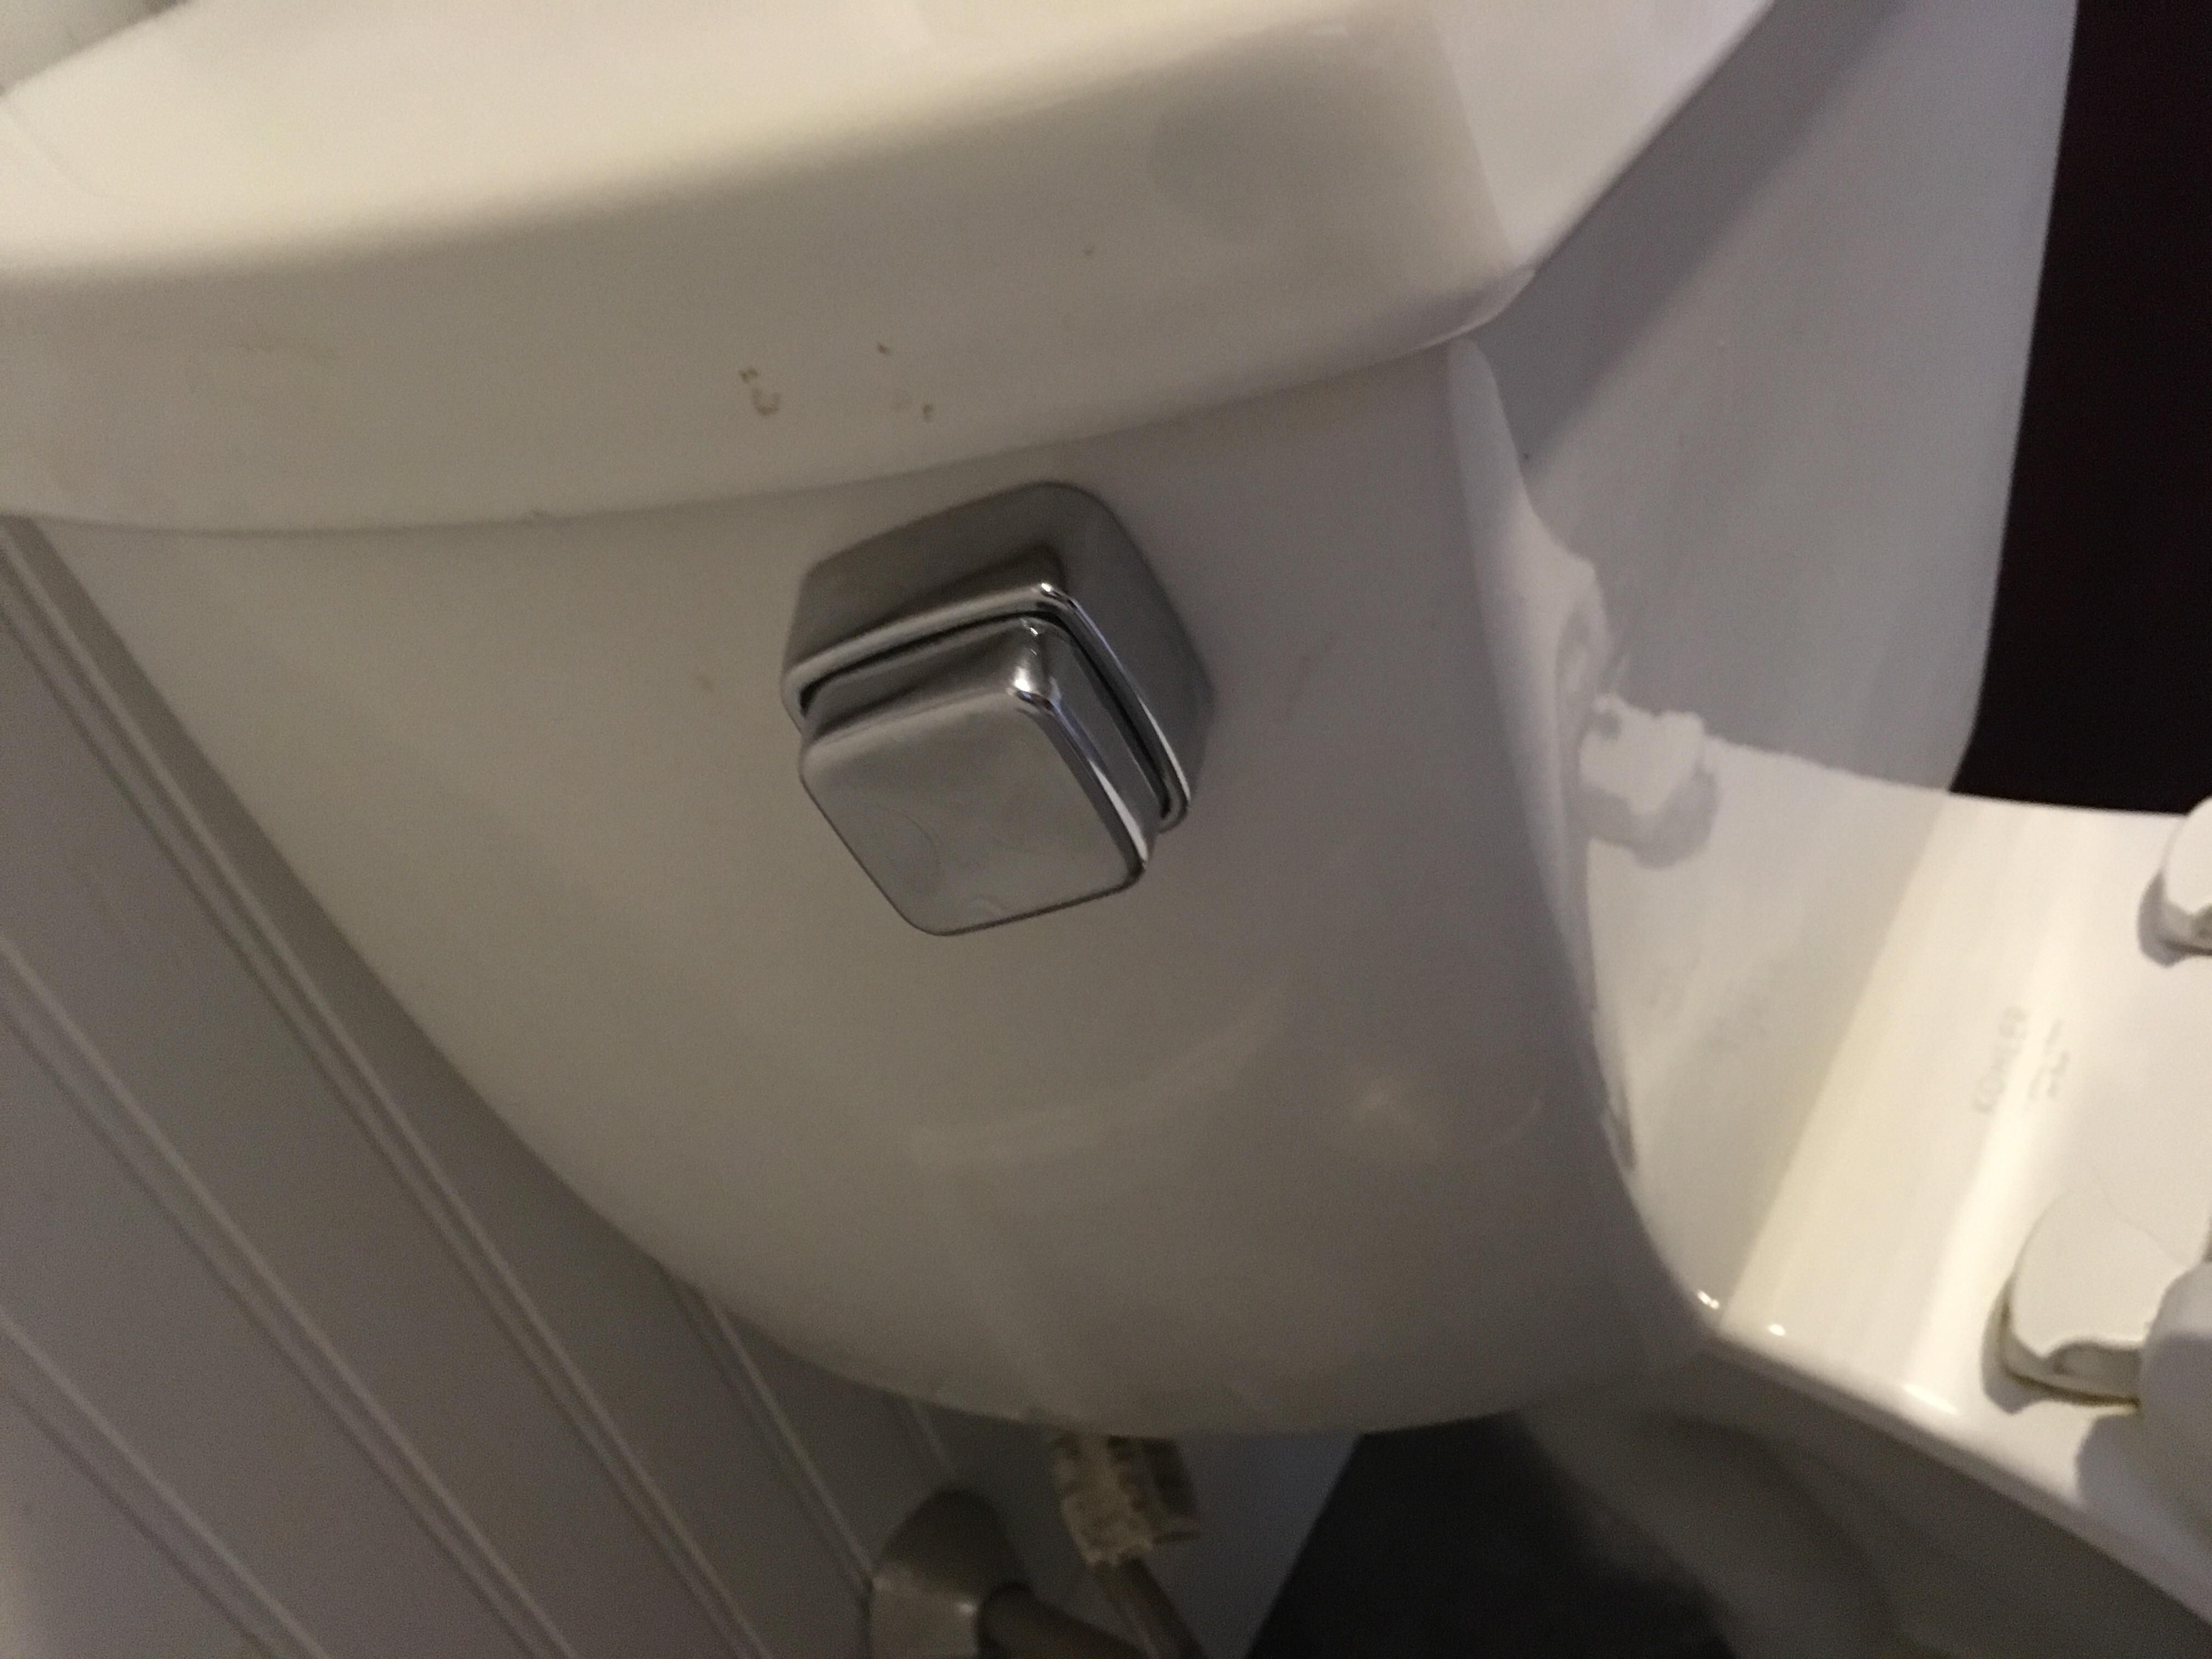 This toilet lever | Pets Funny | Pinterest